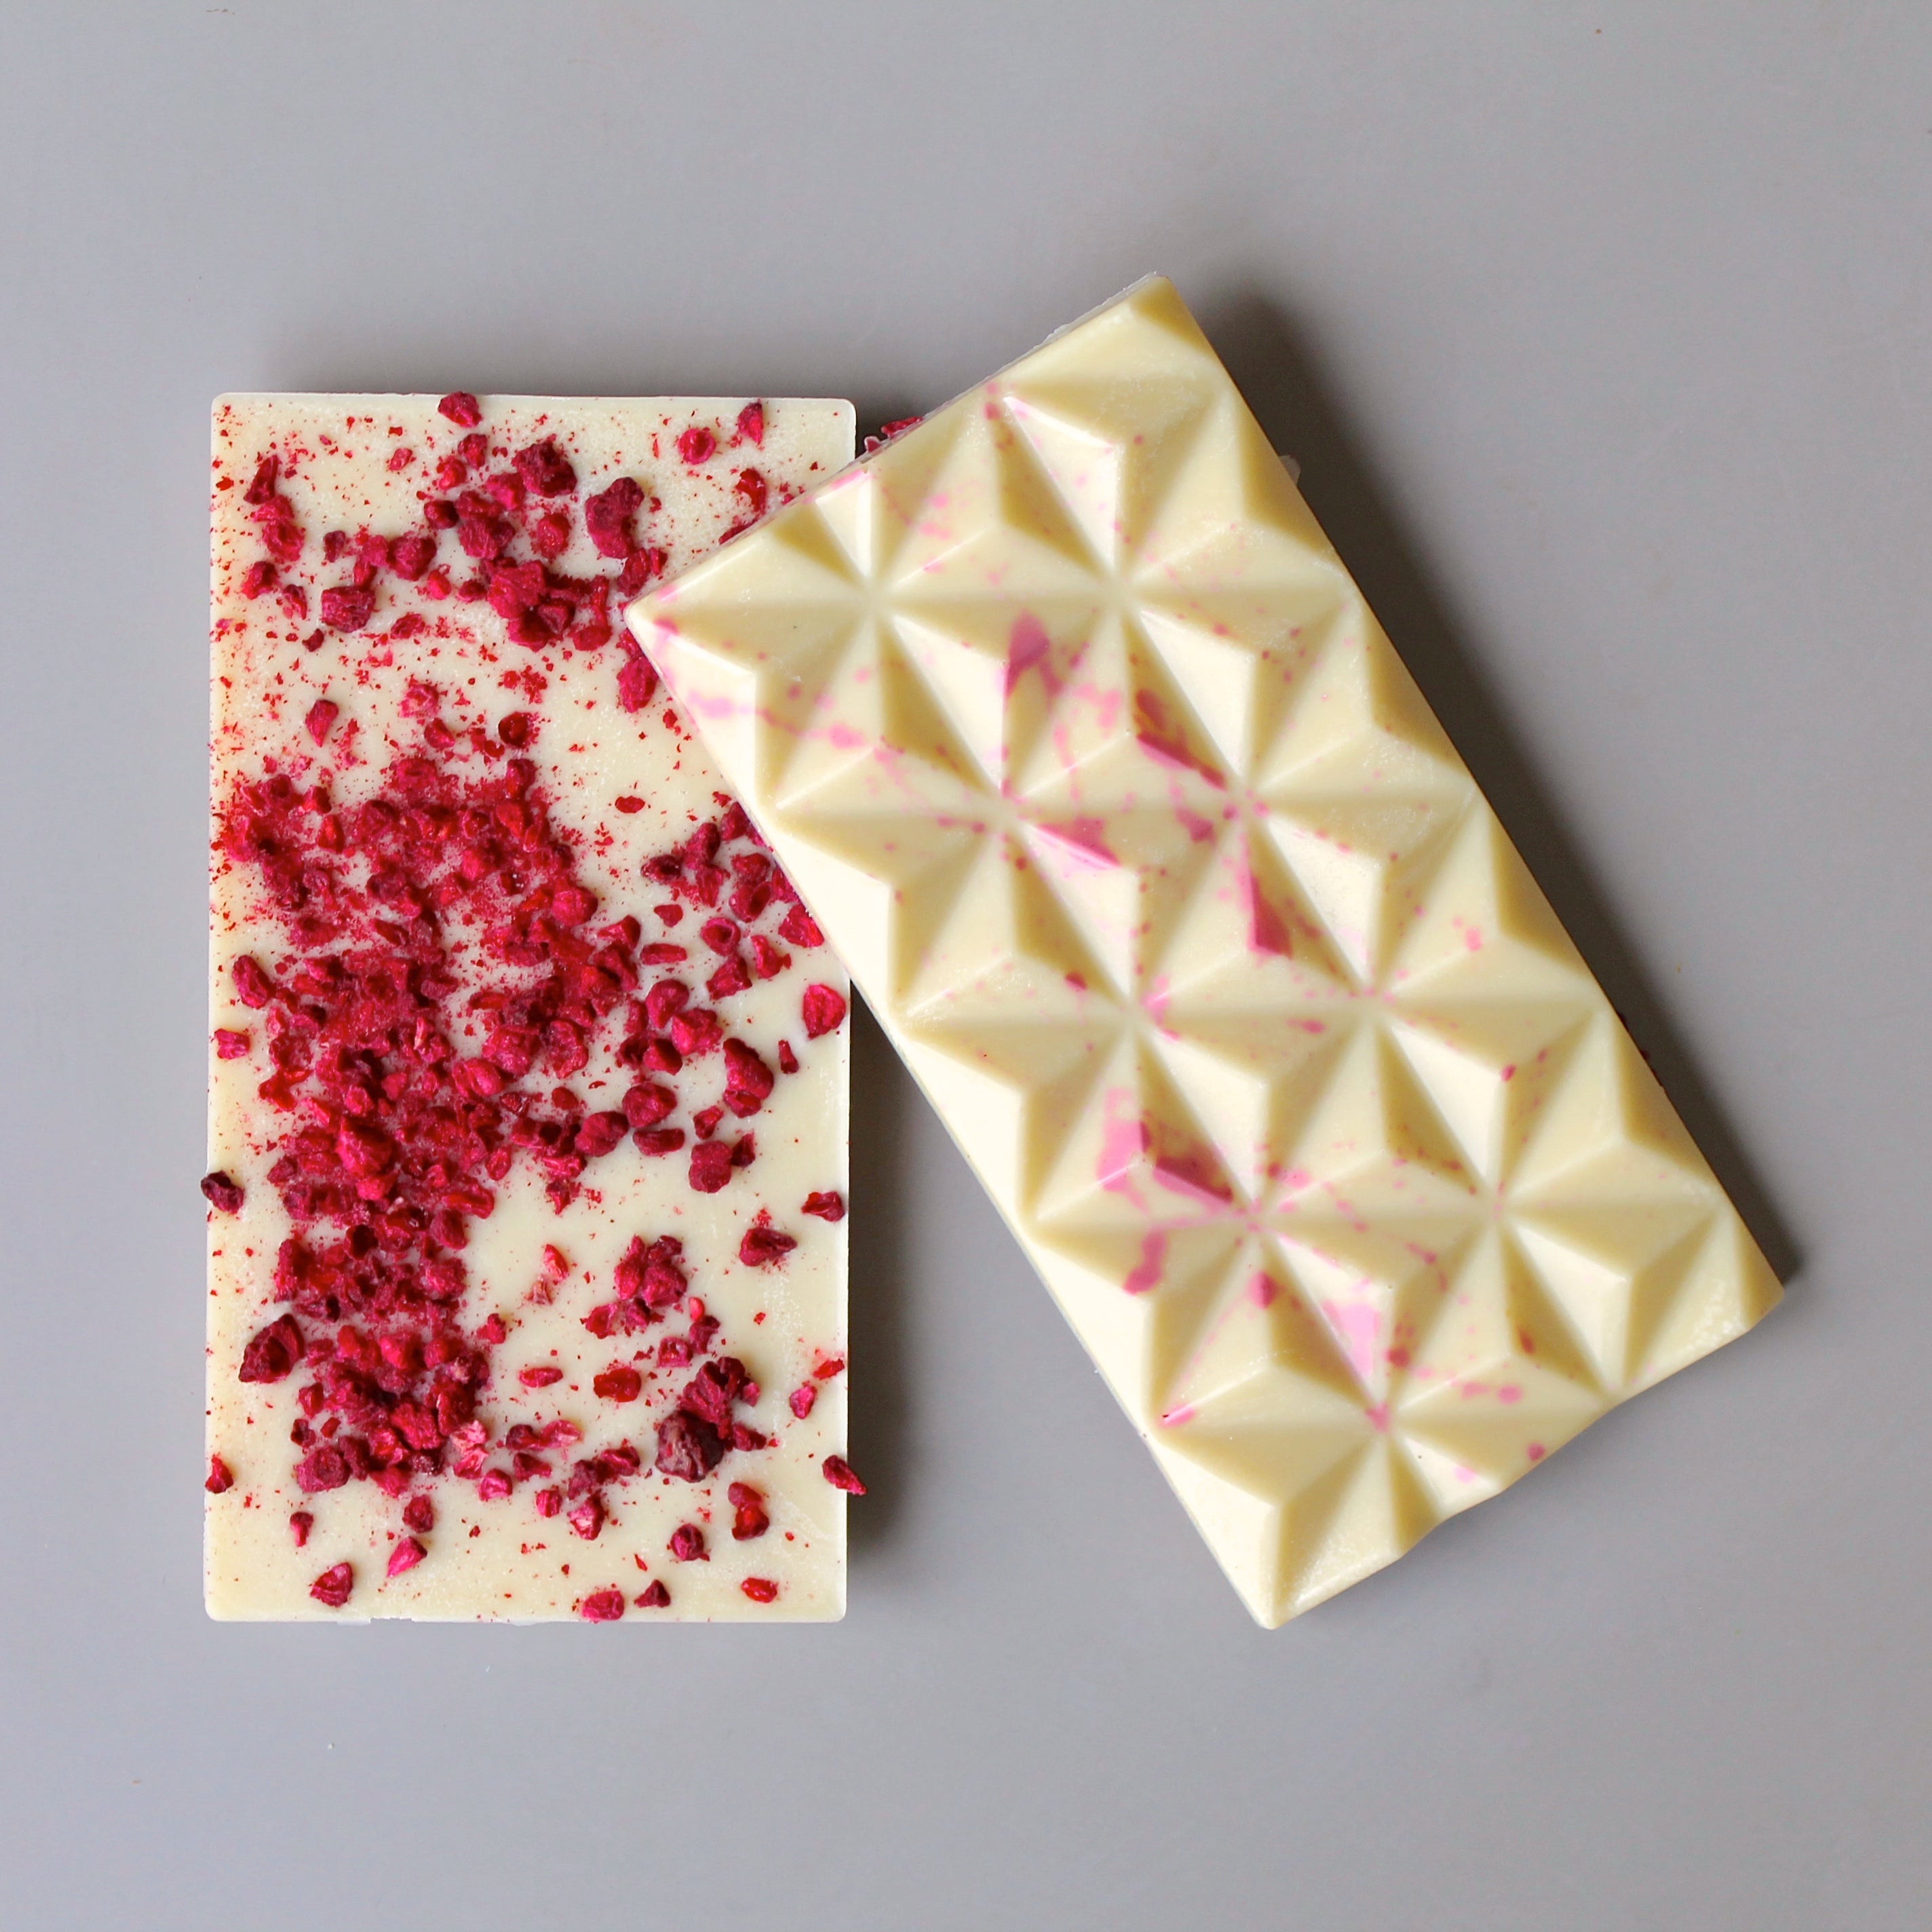 Vegan White Chocolate Raspberry